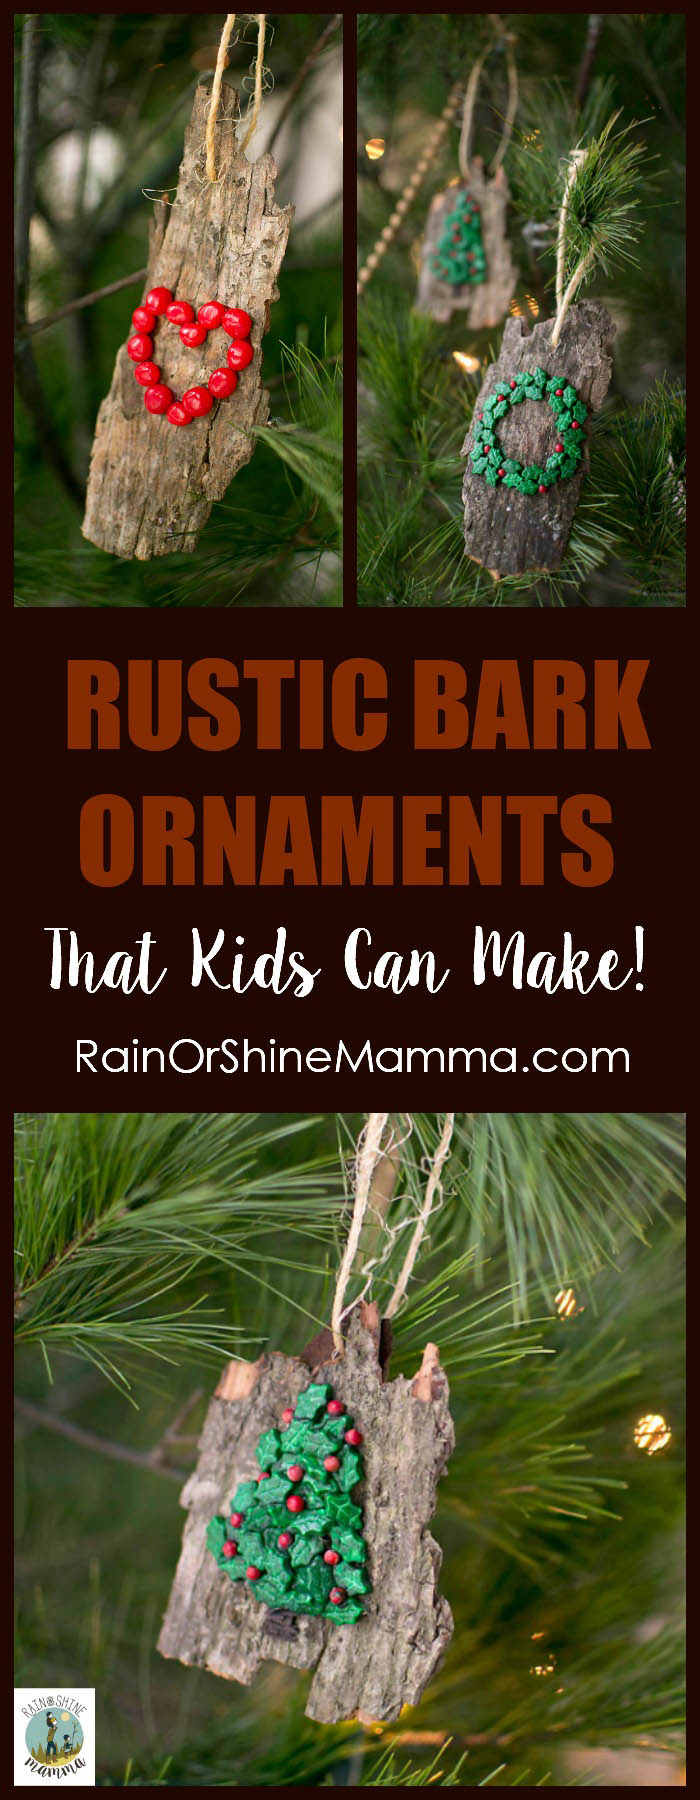 DIY Christmas Ornaments from Bark. All-natural and easy Christmas tree ornaments that kids can make! Nature-inspired and beautiful - a perfect homemade gift for the grandparents or a teacher. This is a holiday craft that is fun for kids and adults alike. #DIY #Christmas #Craft #Natural Rain or Shine Mamma